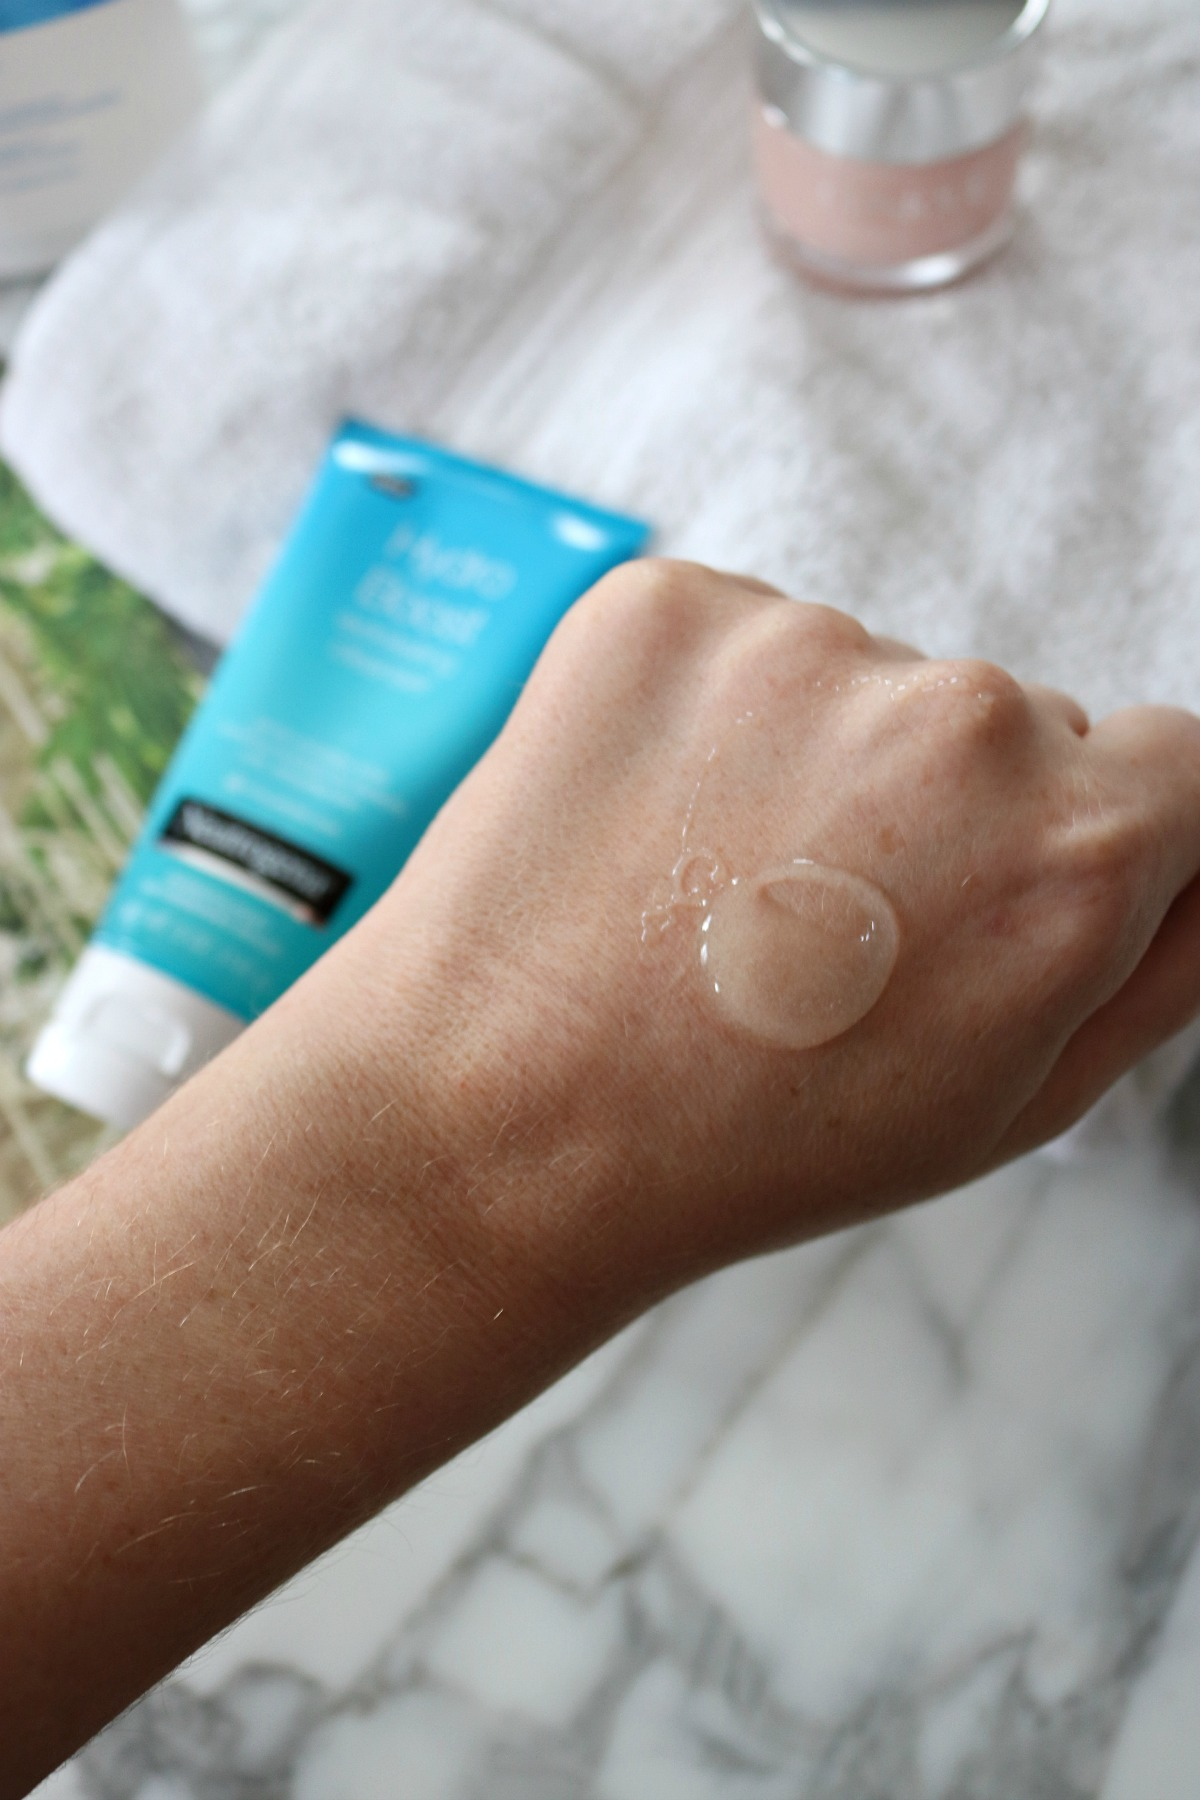 Neutrogena Hydro Boost Exfoliating Cleanser Review I DreaminLace.com